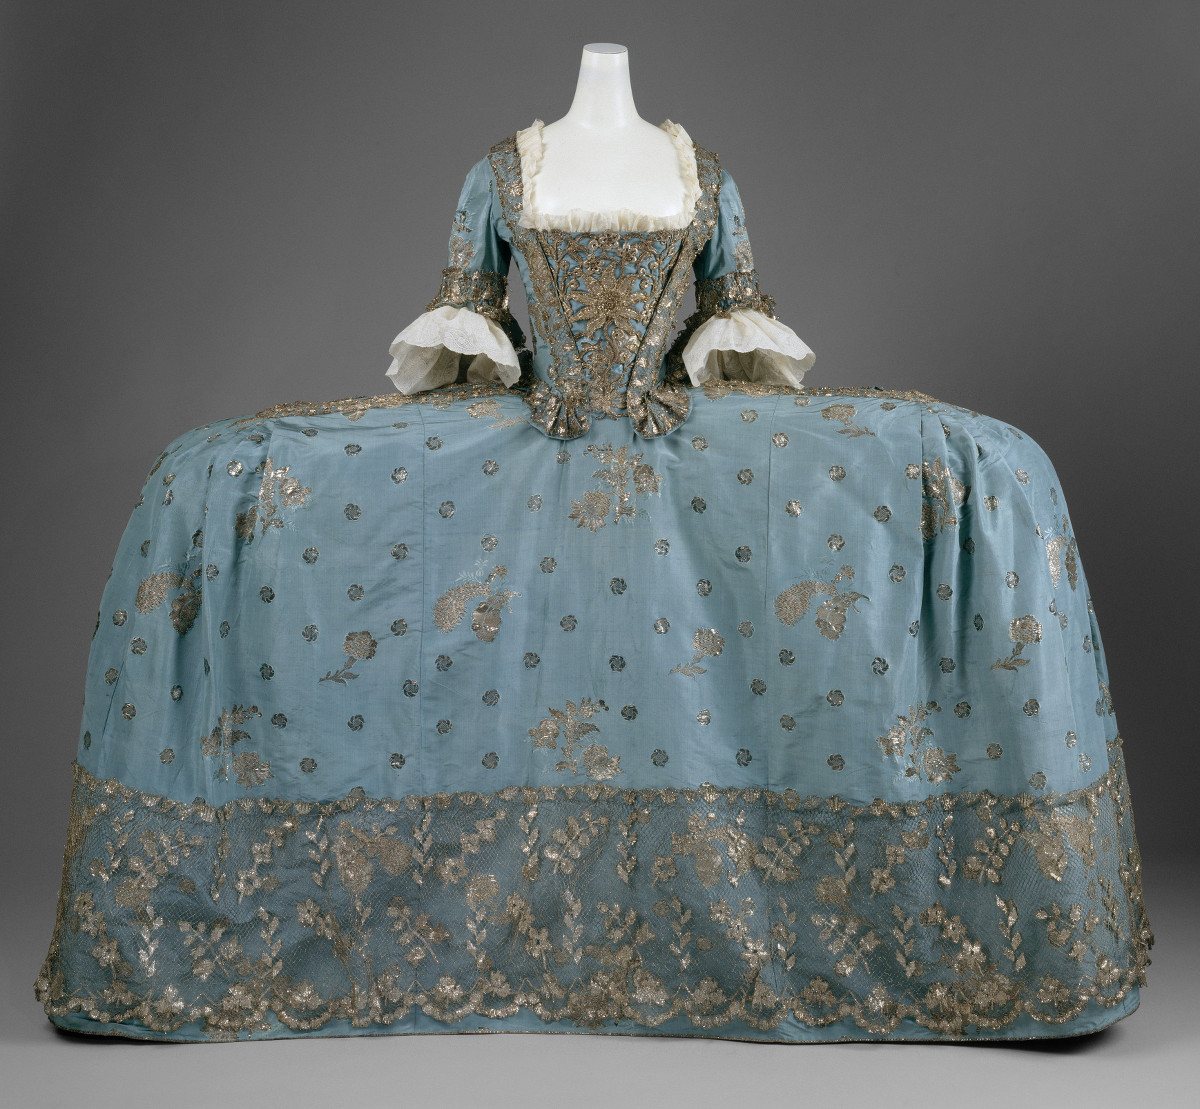 c. 1750. Court dress. British. Silk, metallic thread. metmuseum